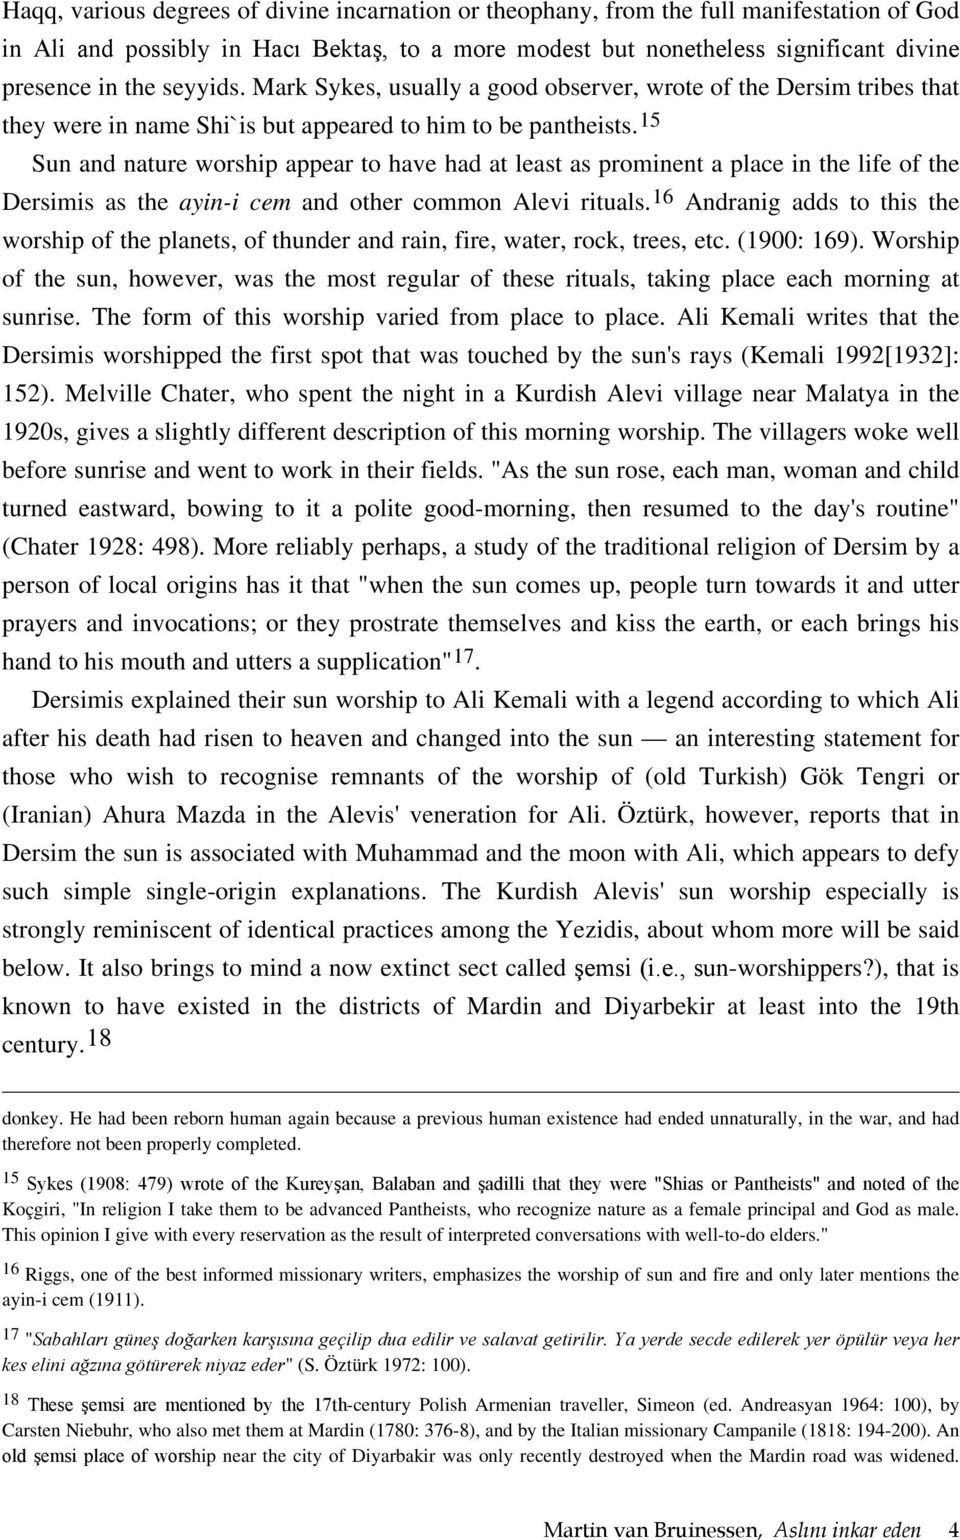 15 Sun and nature worship appear to have had at least as prominent a place in the life of the Dersimis as the ayin-i cem and other common Alevi rituals.